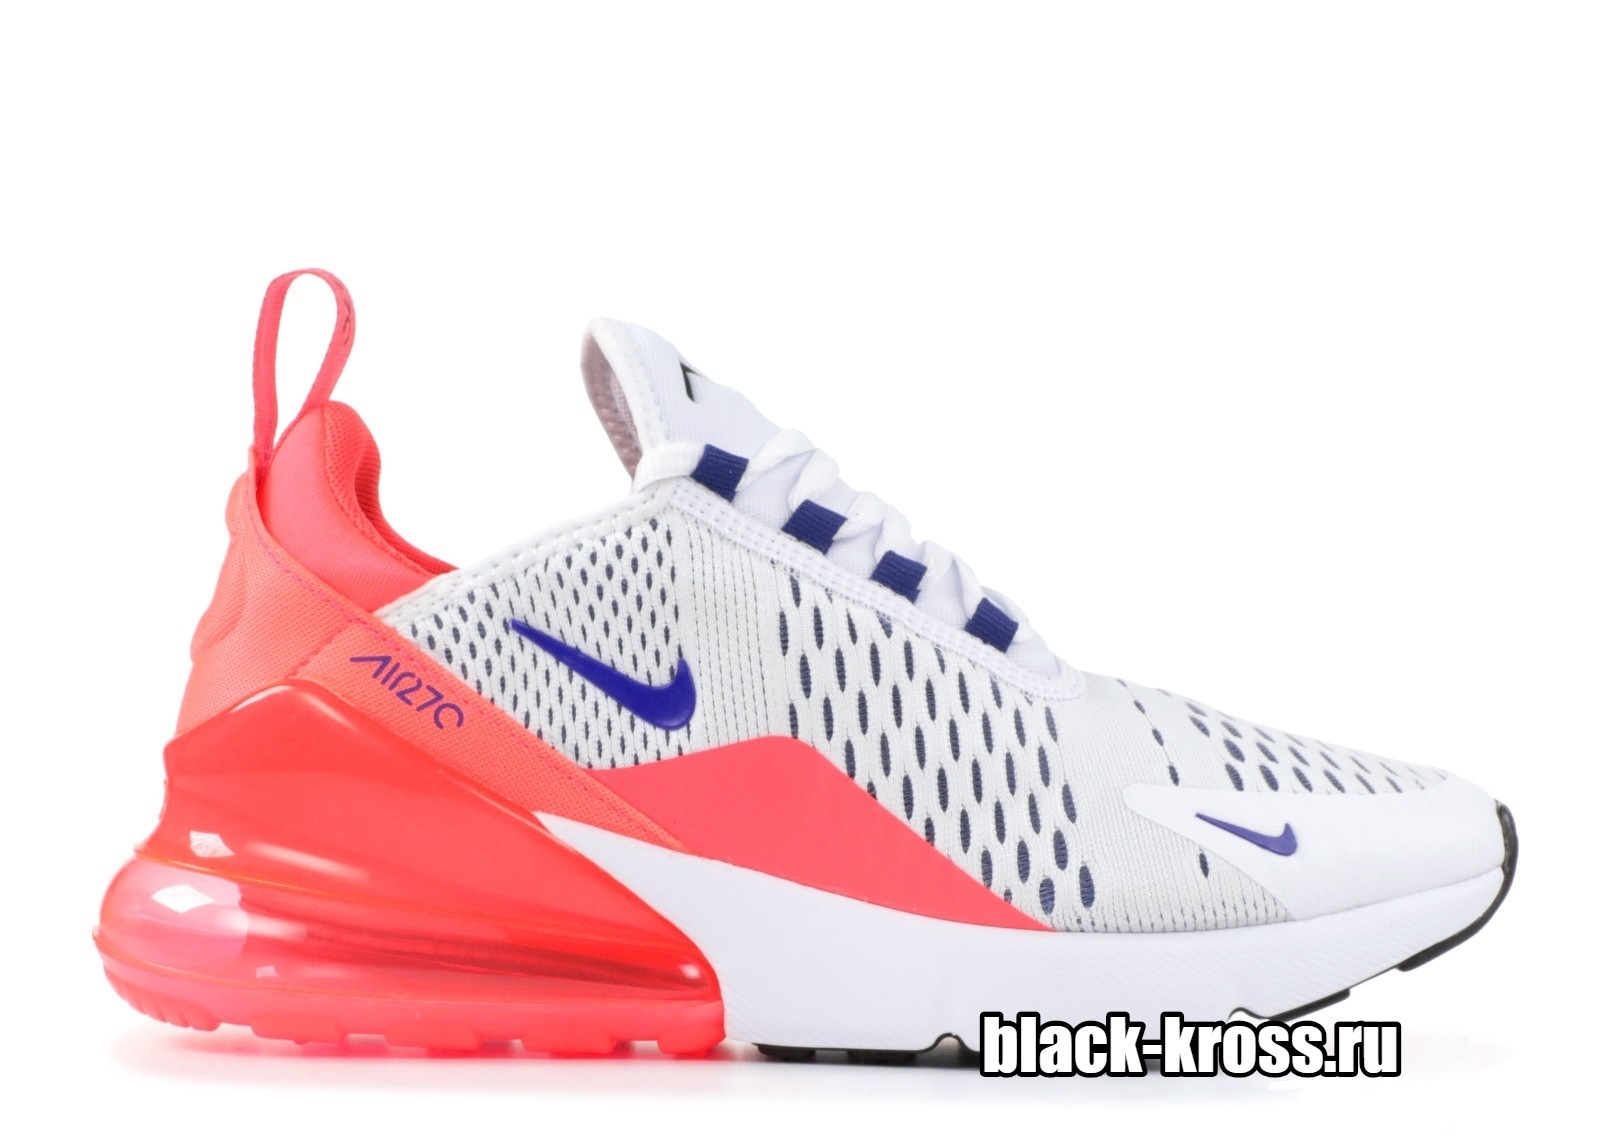 Air Max 270 OG Ultramarine Solar Red (36-40)